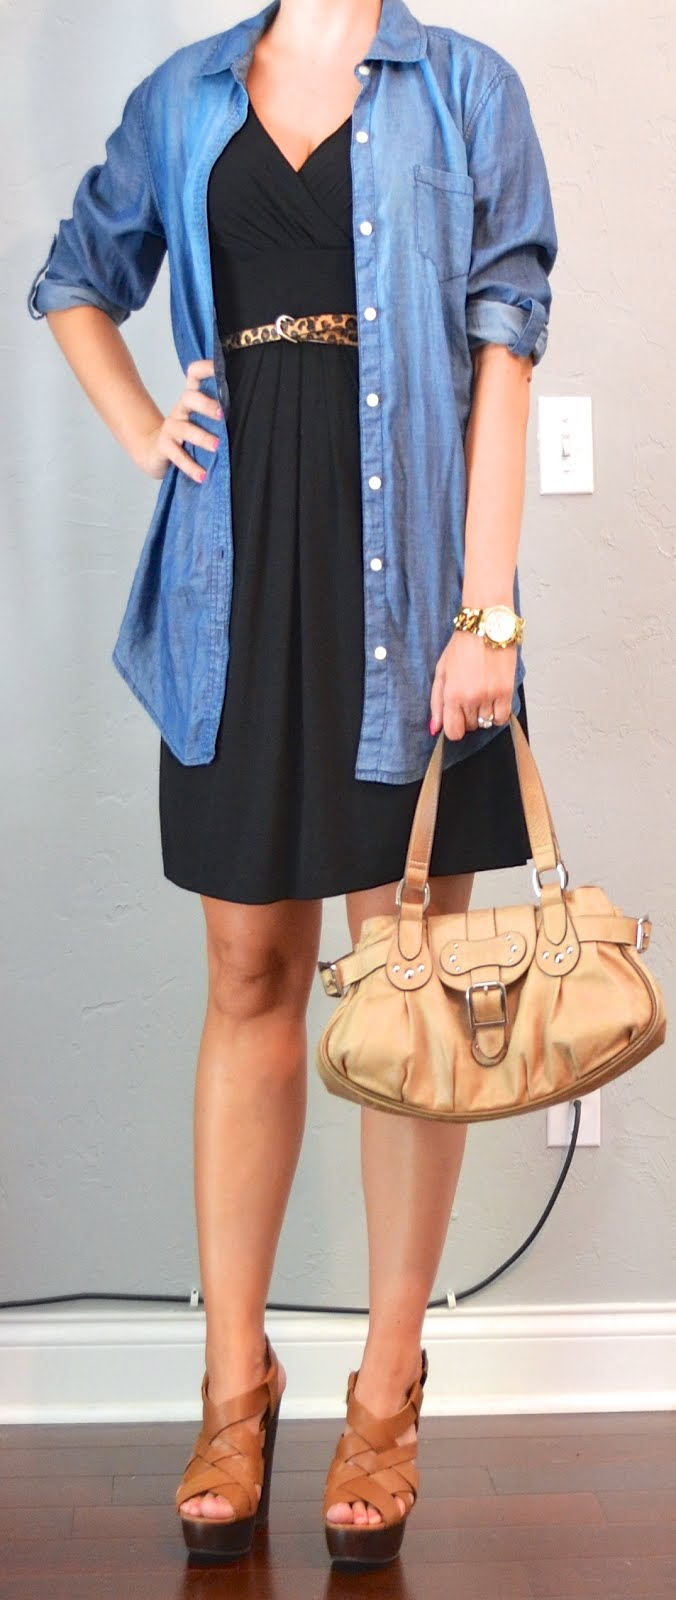 Outfit Post Black Dress Chambray Shirt Leopard Belt